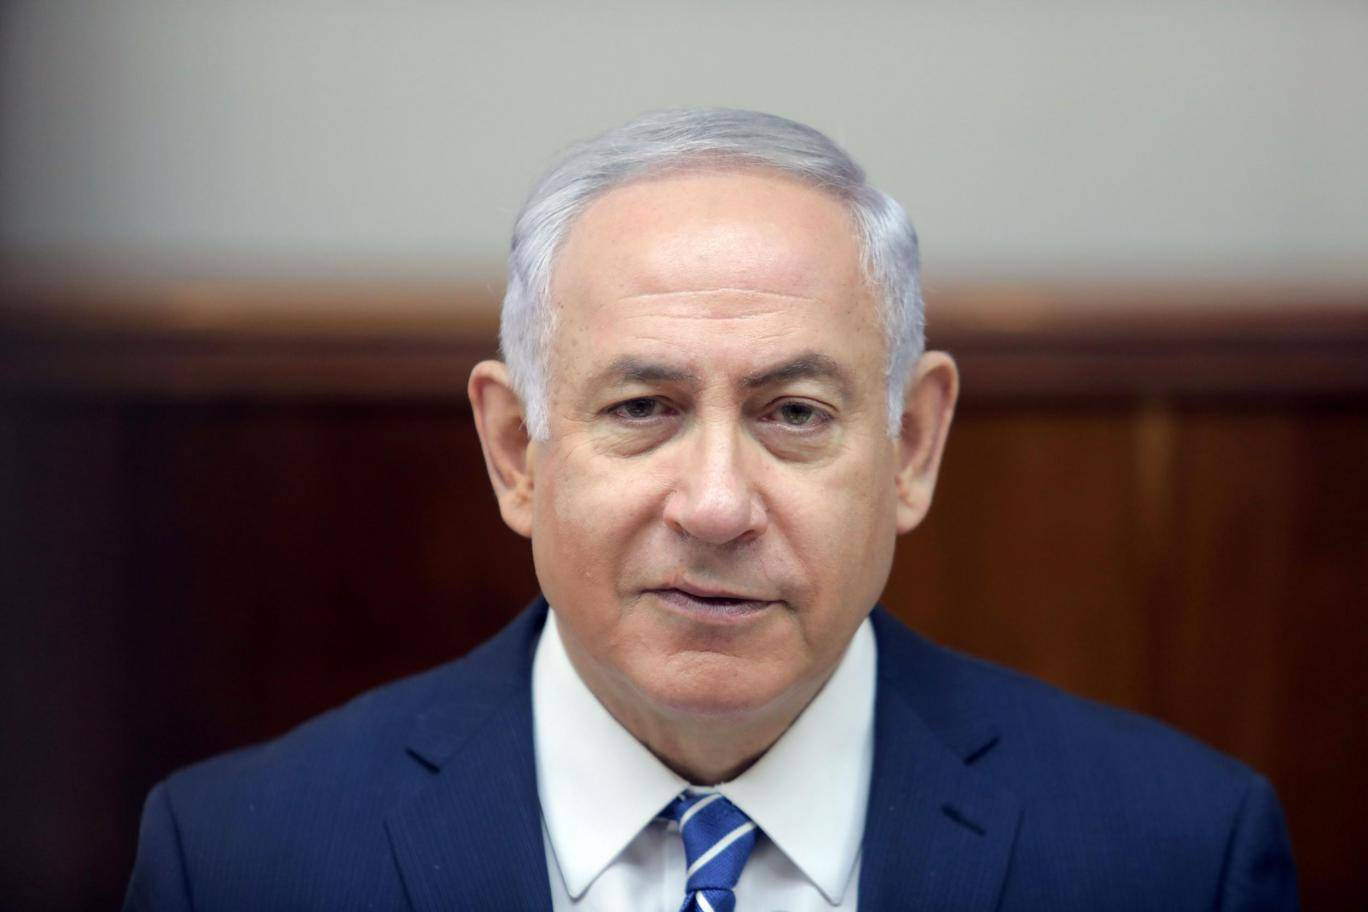 Israeli police 'have enough evidence to charge PM Benjamin Netanyahu' https://t.co/OmsENCTJF3 https://t.co/yUBgb2SWvc